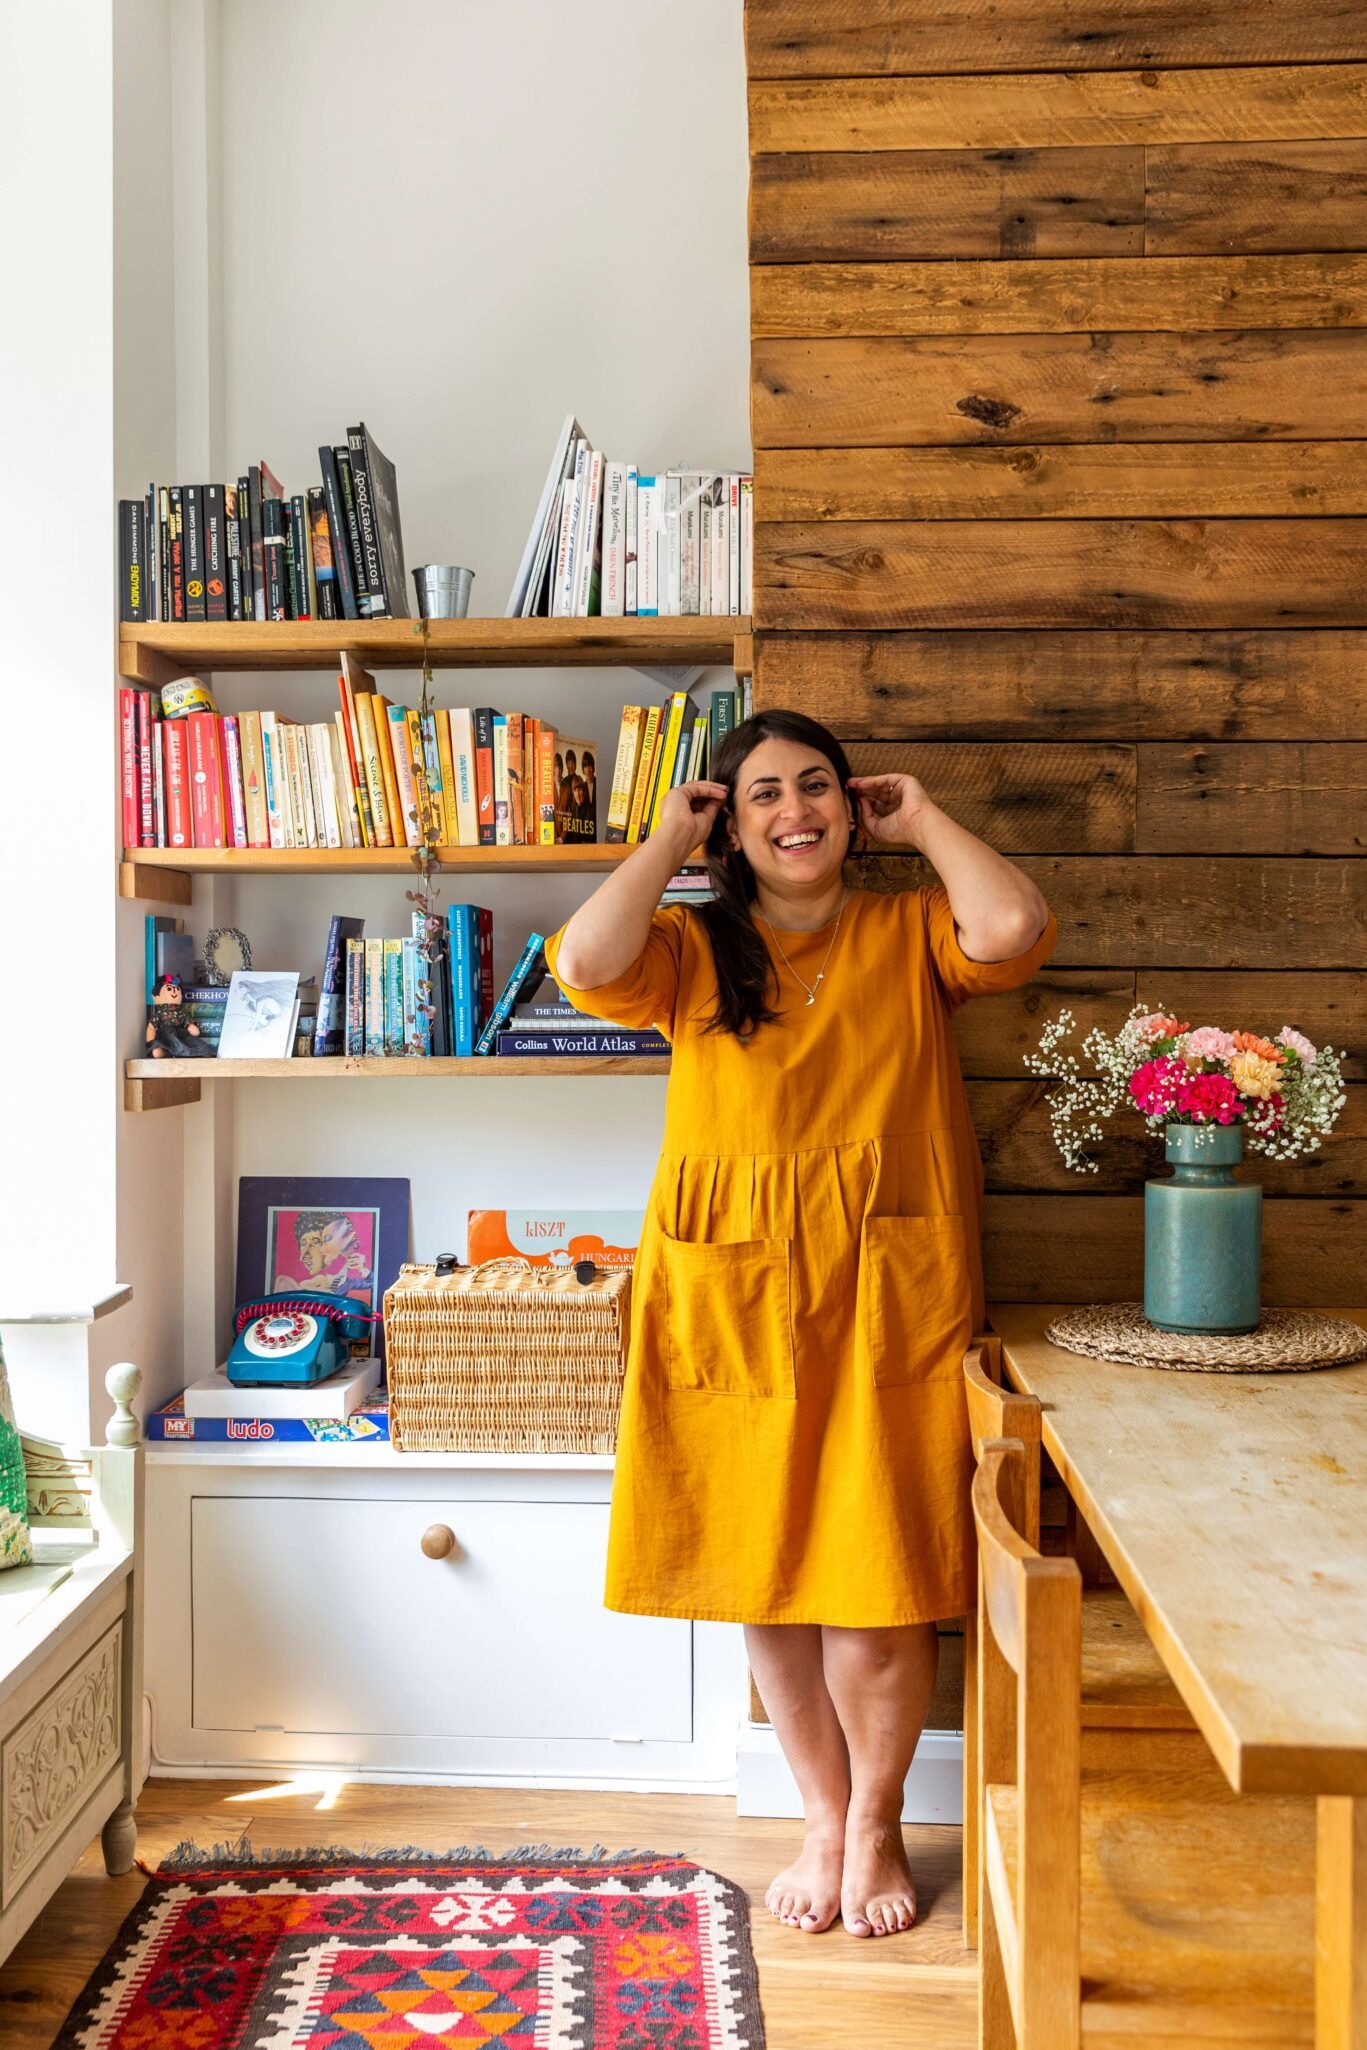 Rida is standing in front of the bookshelf wearing a mustard yellow dress and laughing